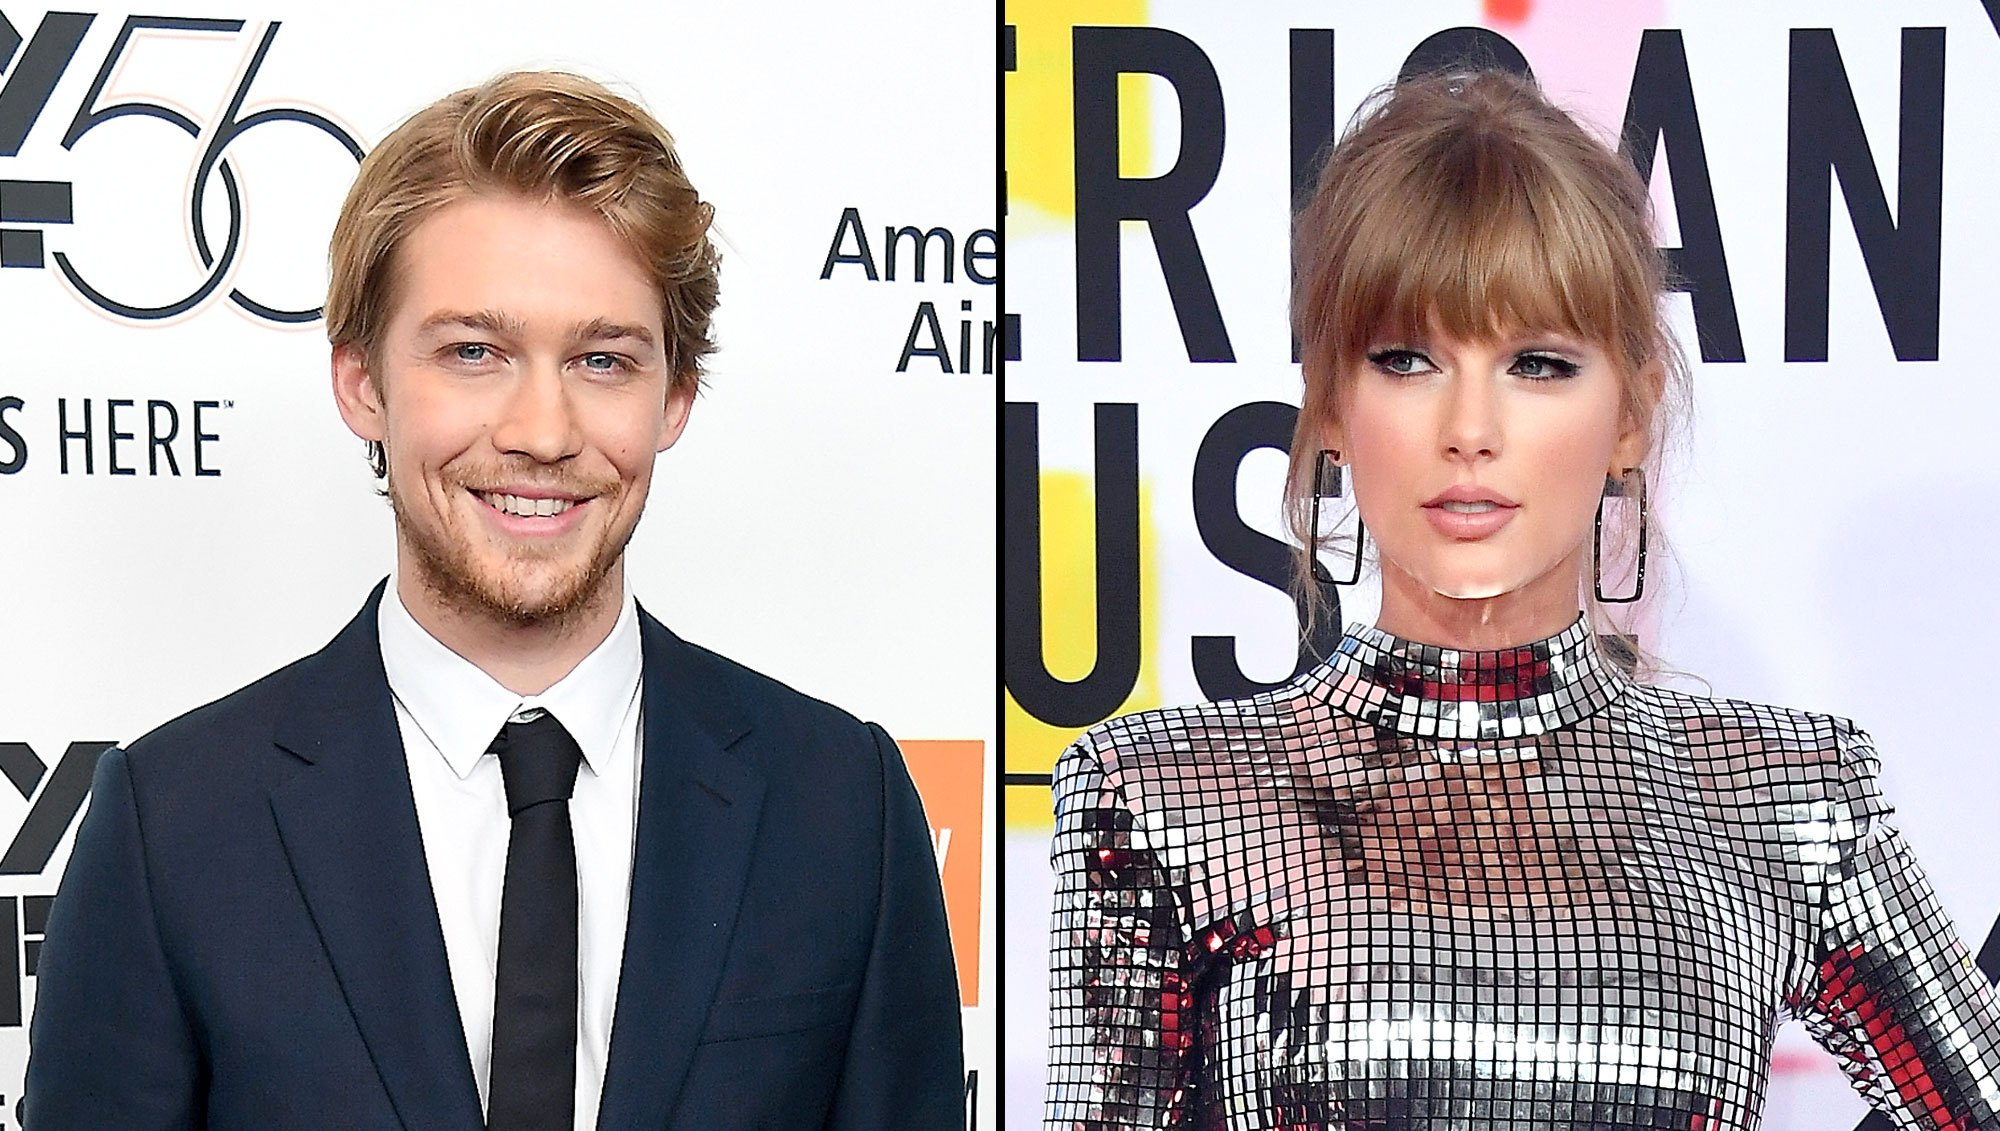 Joe Alwyn's Family 'Adores' Taylor Swift